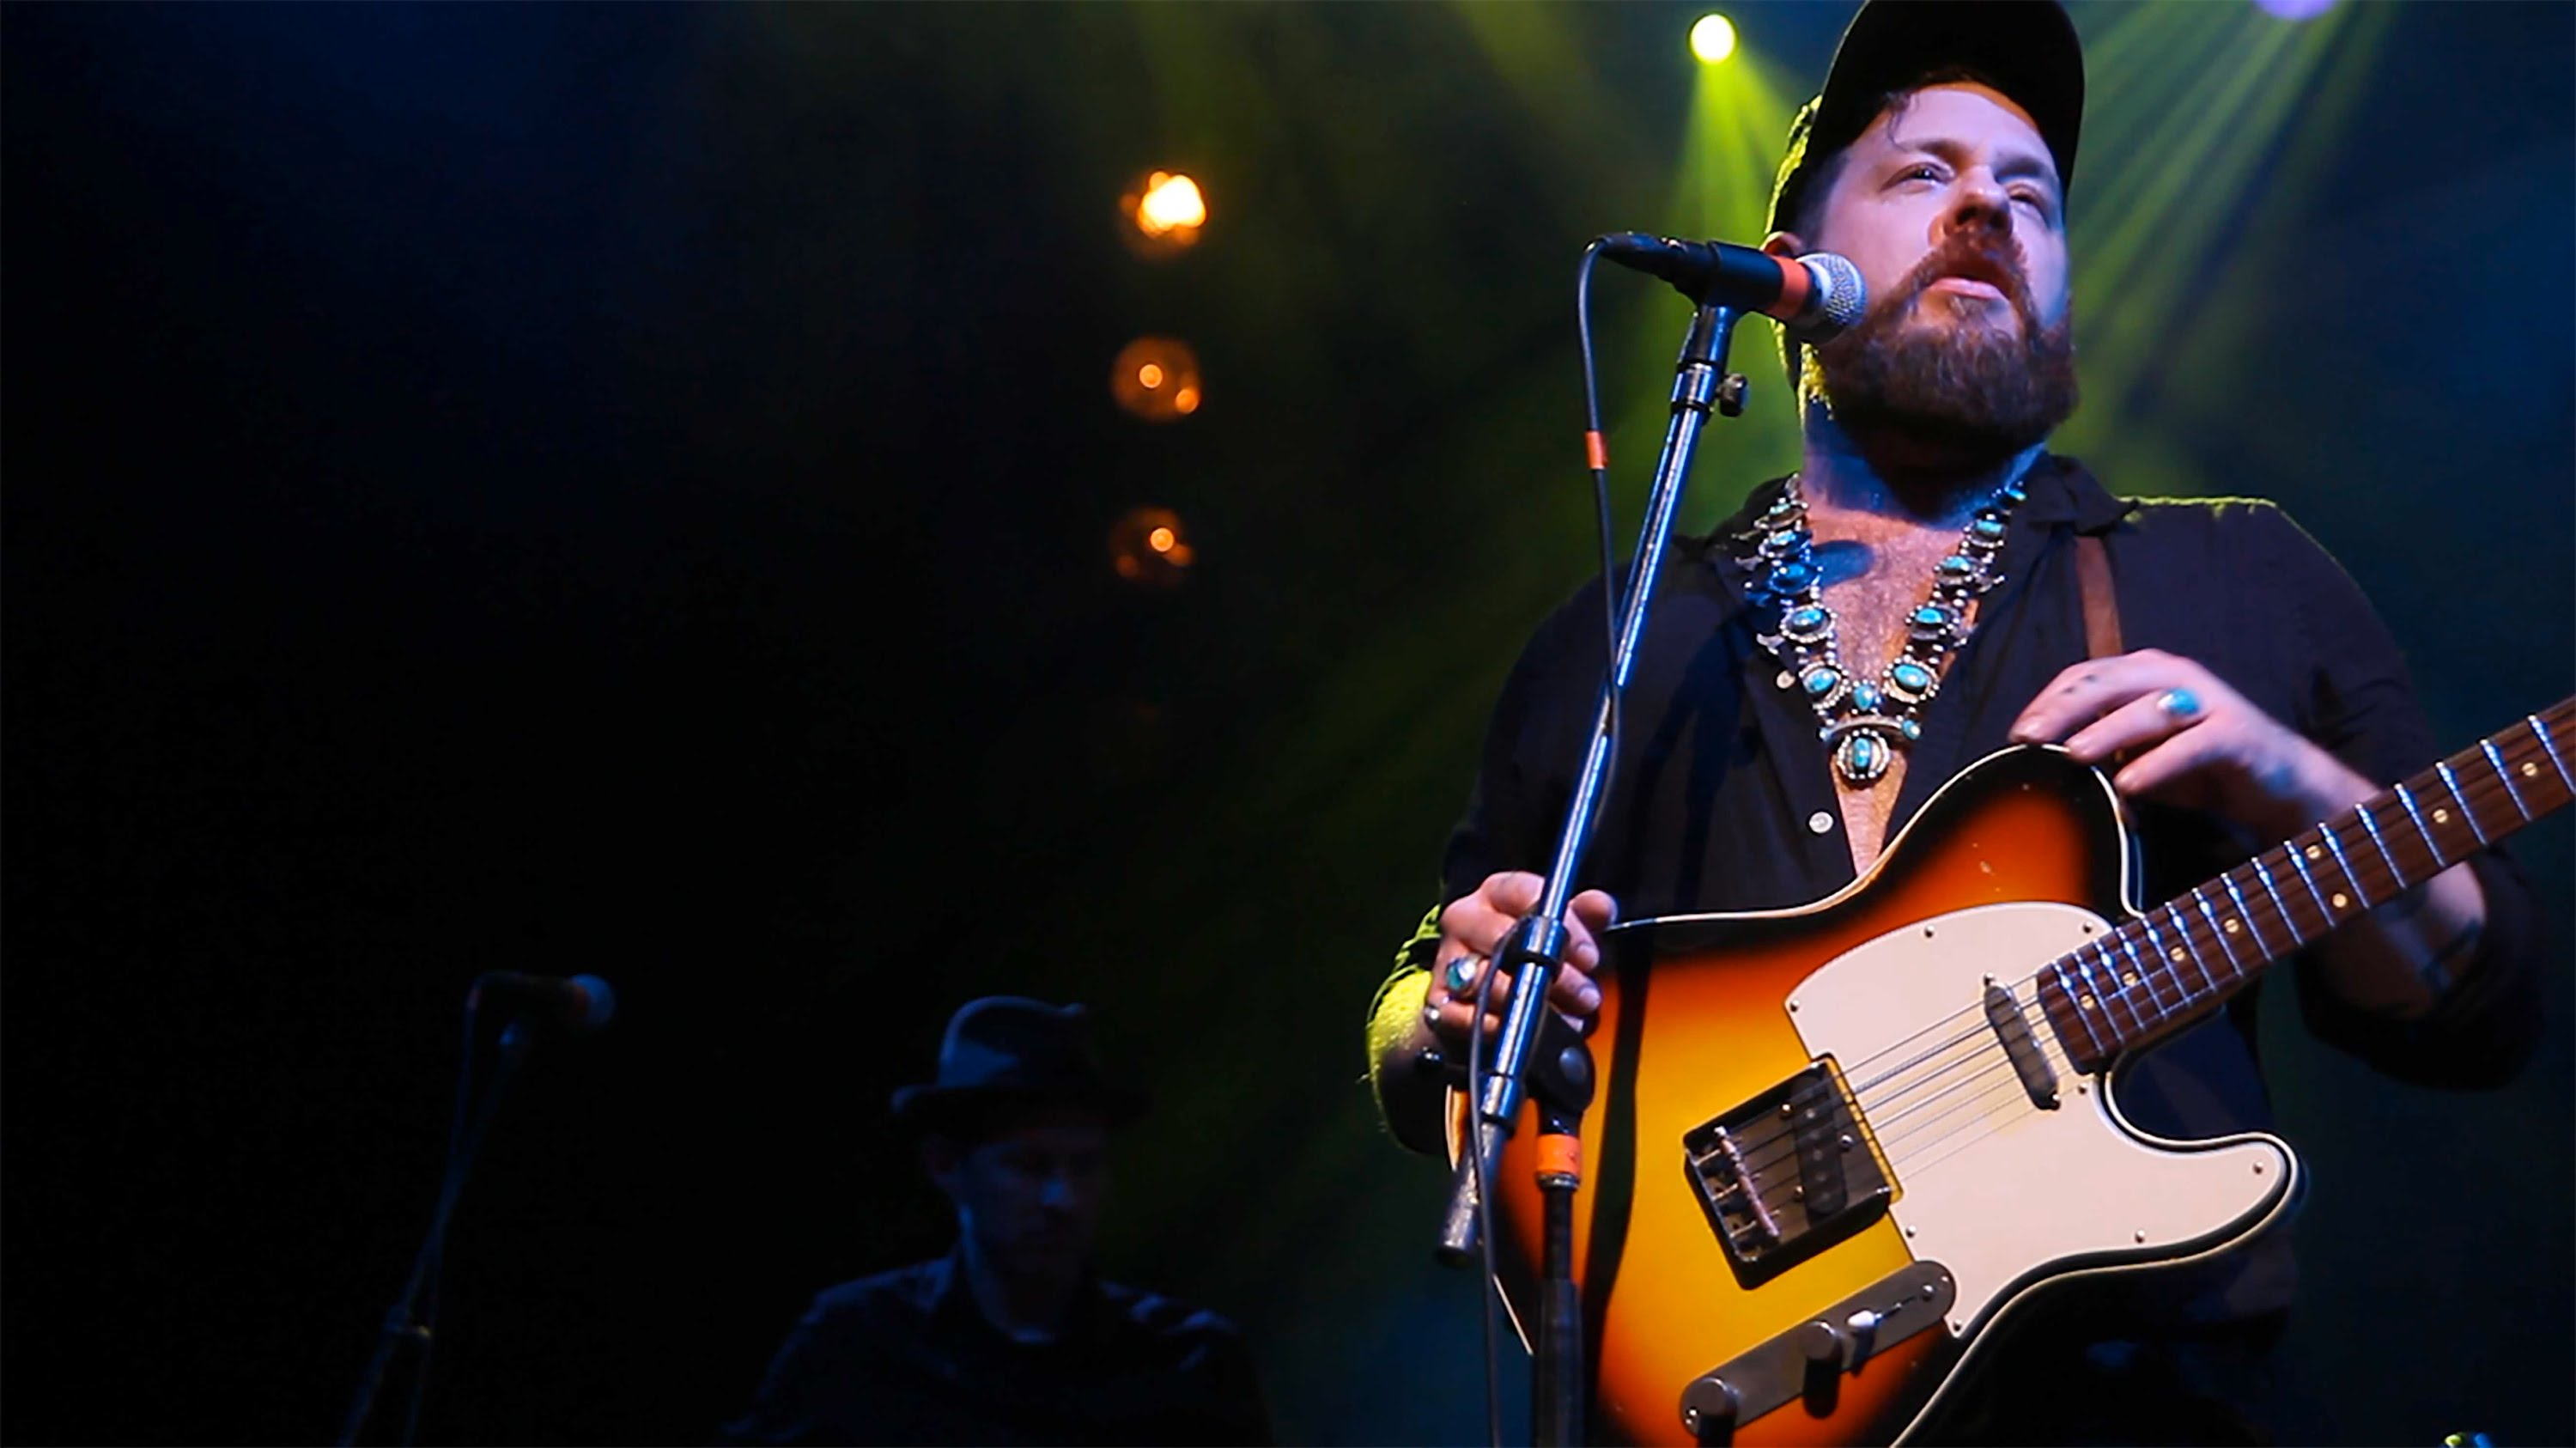 Nathaniel Rateliff and The Night Sweats at Red Rocks Amphitheater